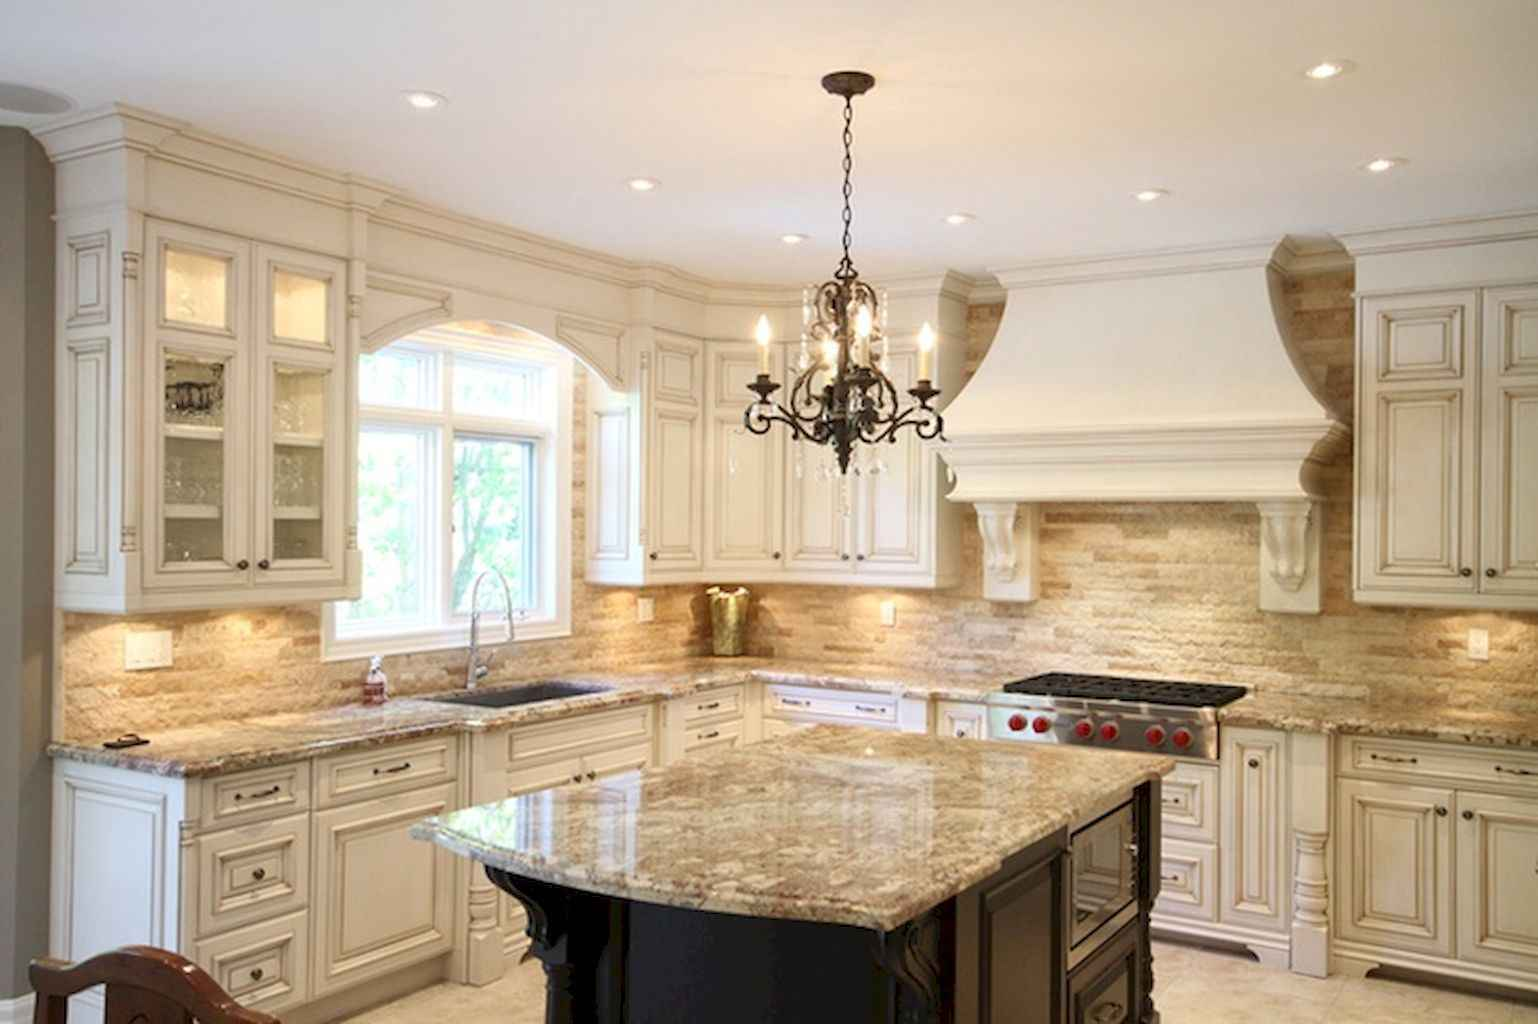 Incredible french country kitchen design ideas (30)